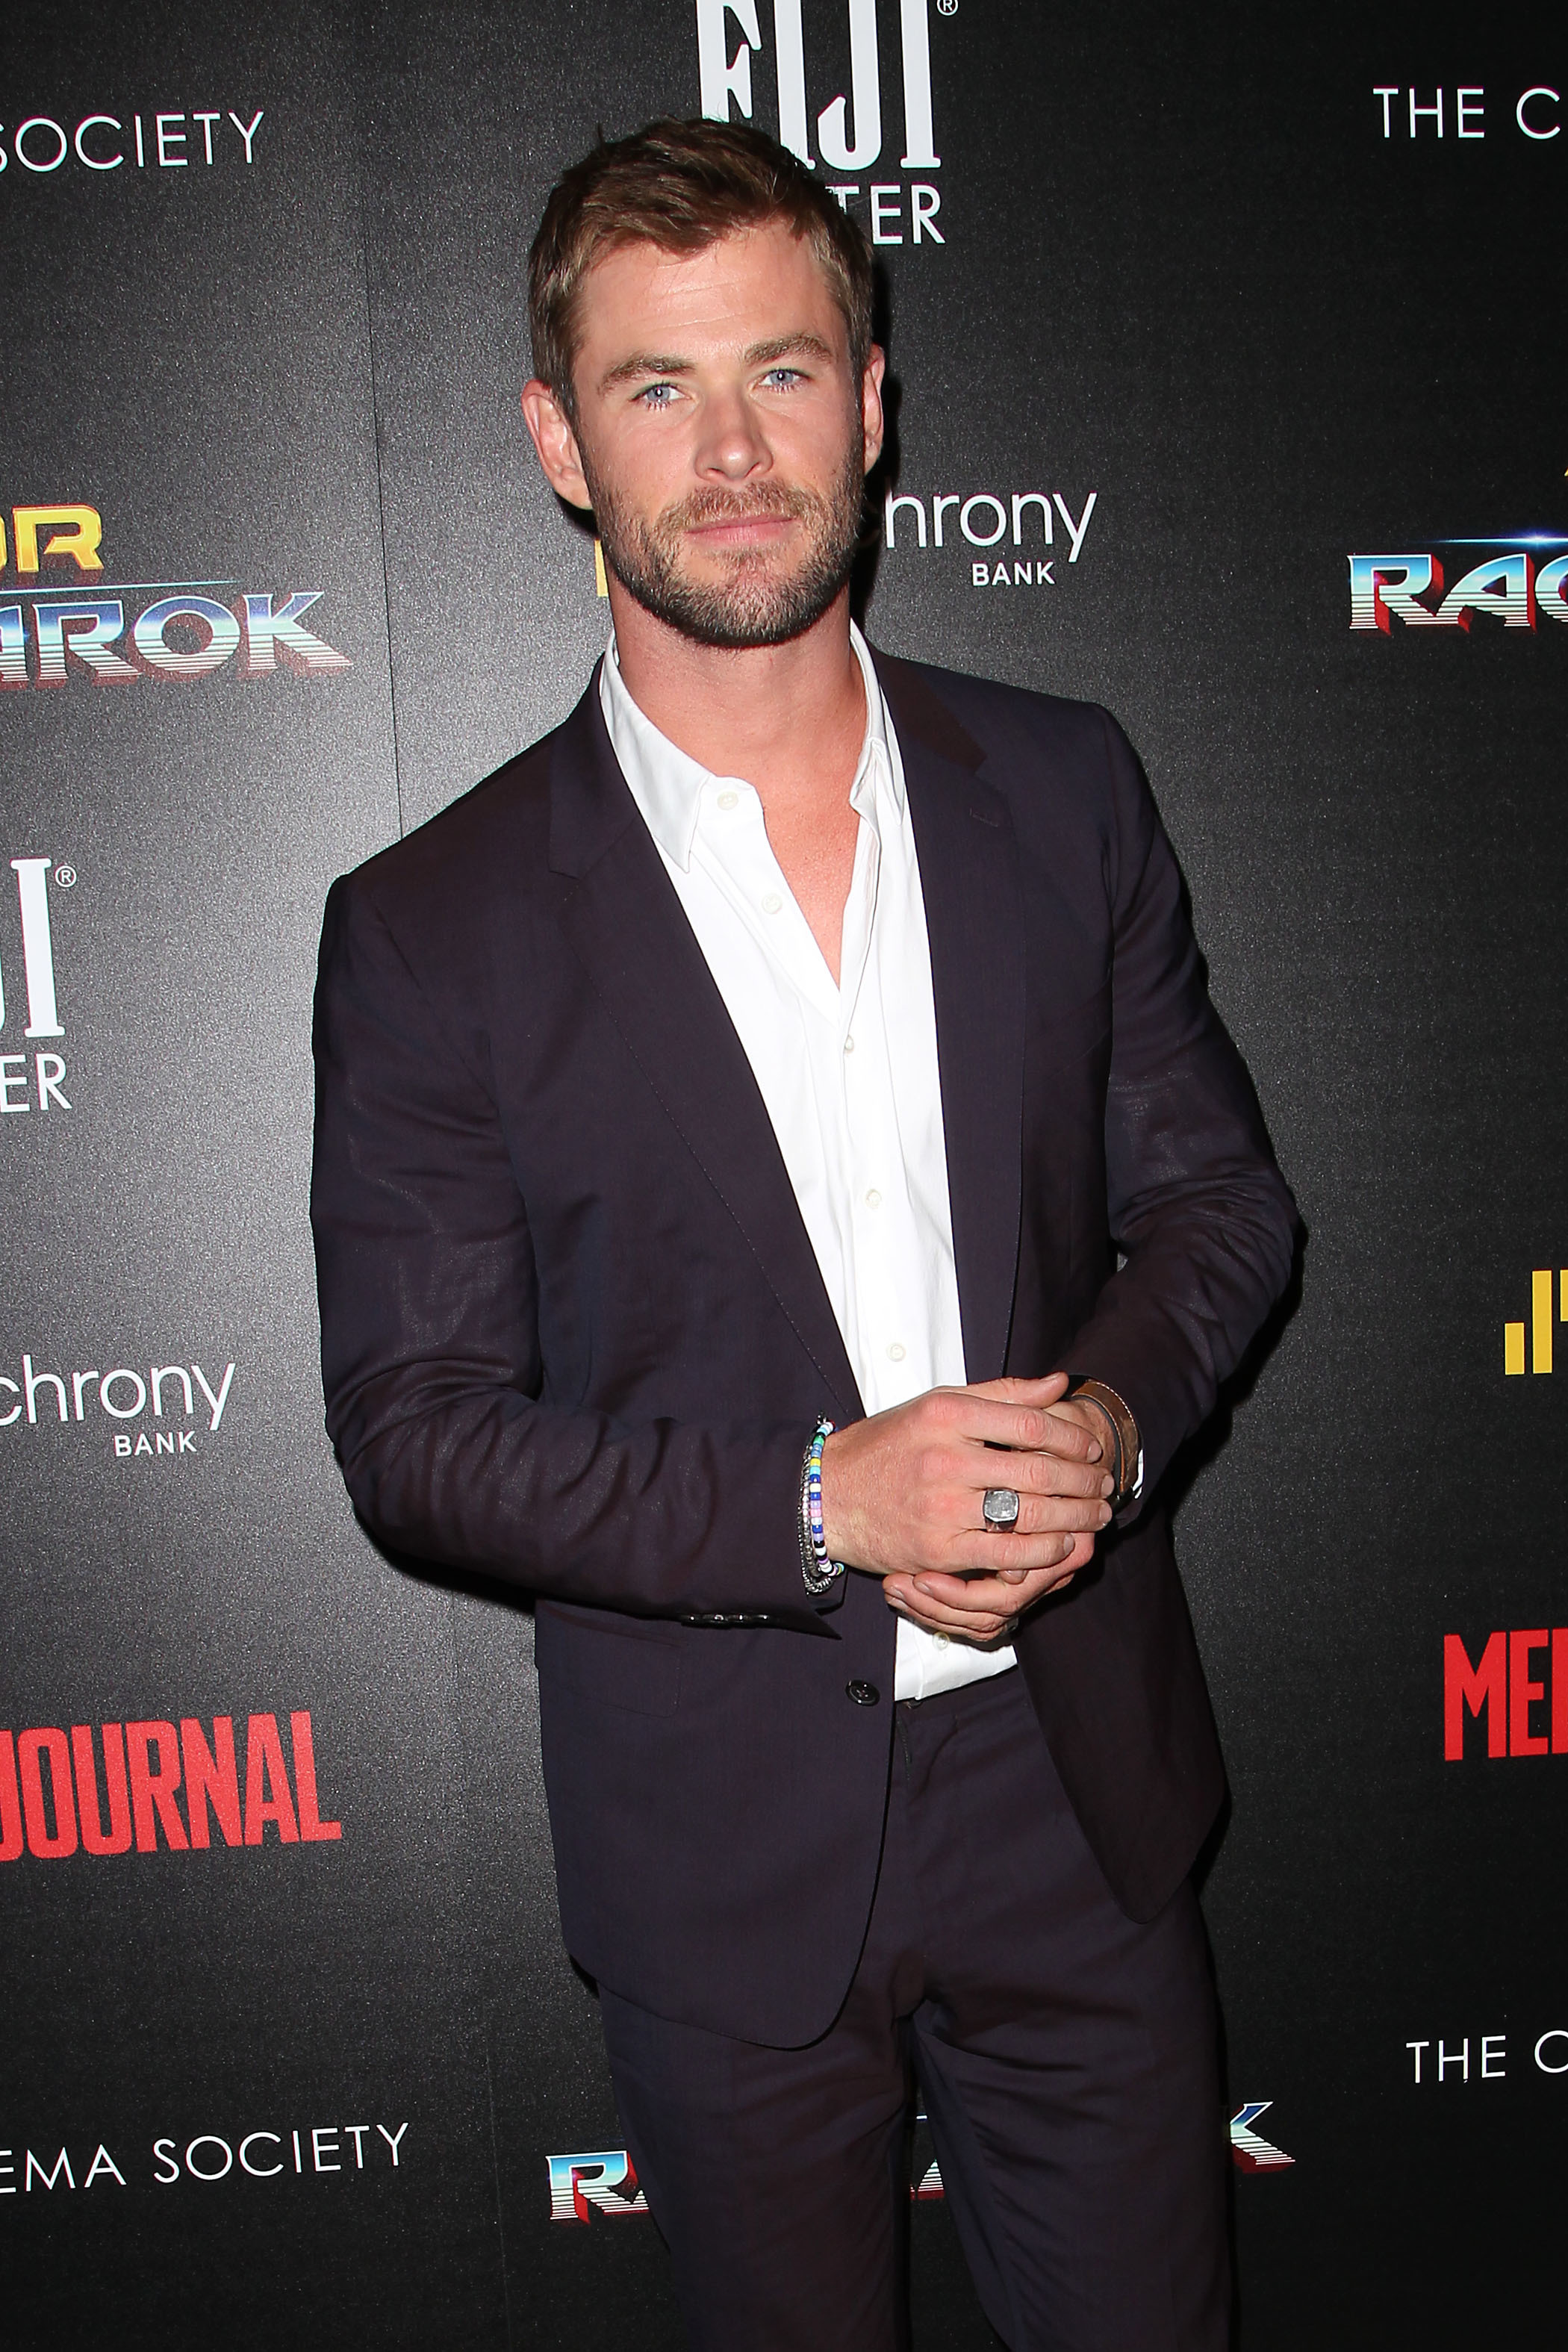 Chris Hemsworth says 'Ghostbusters' helped inspire 'Thor'